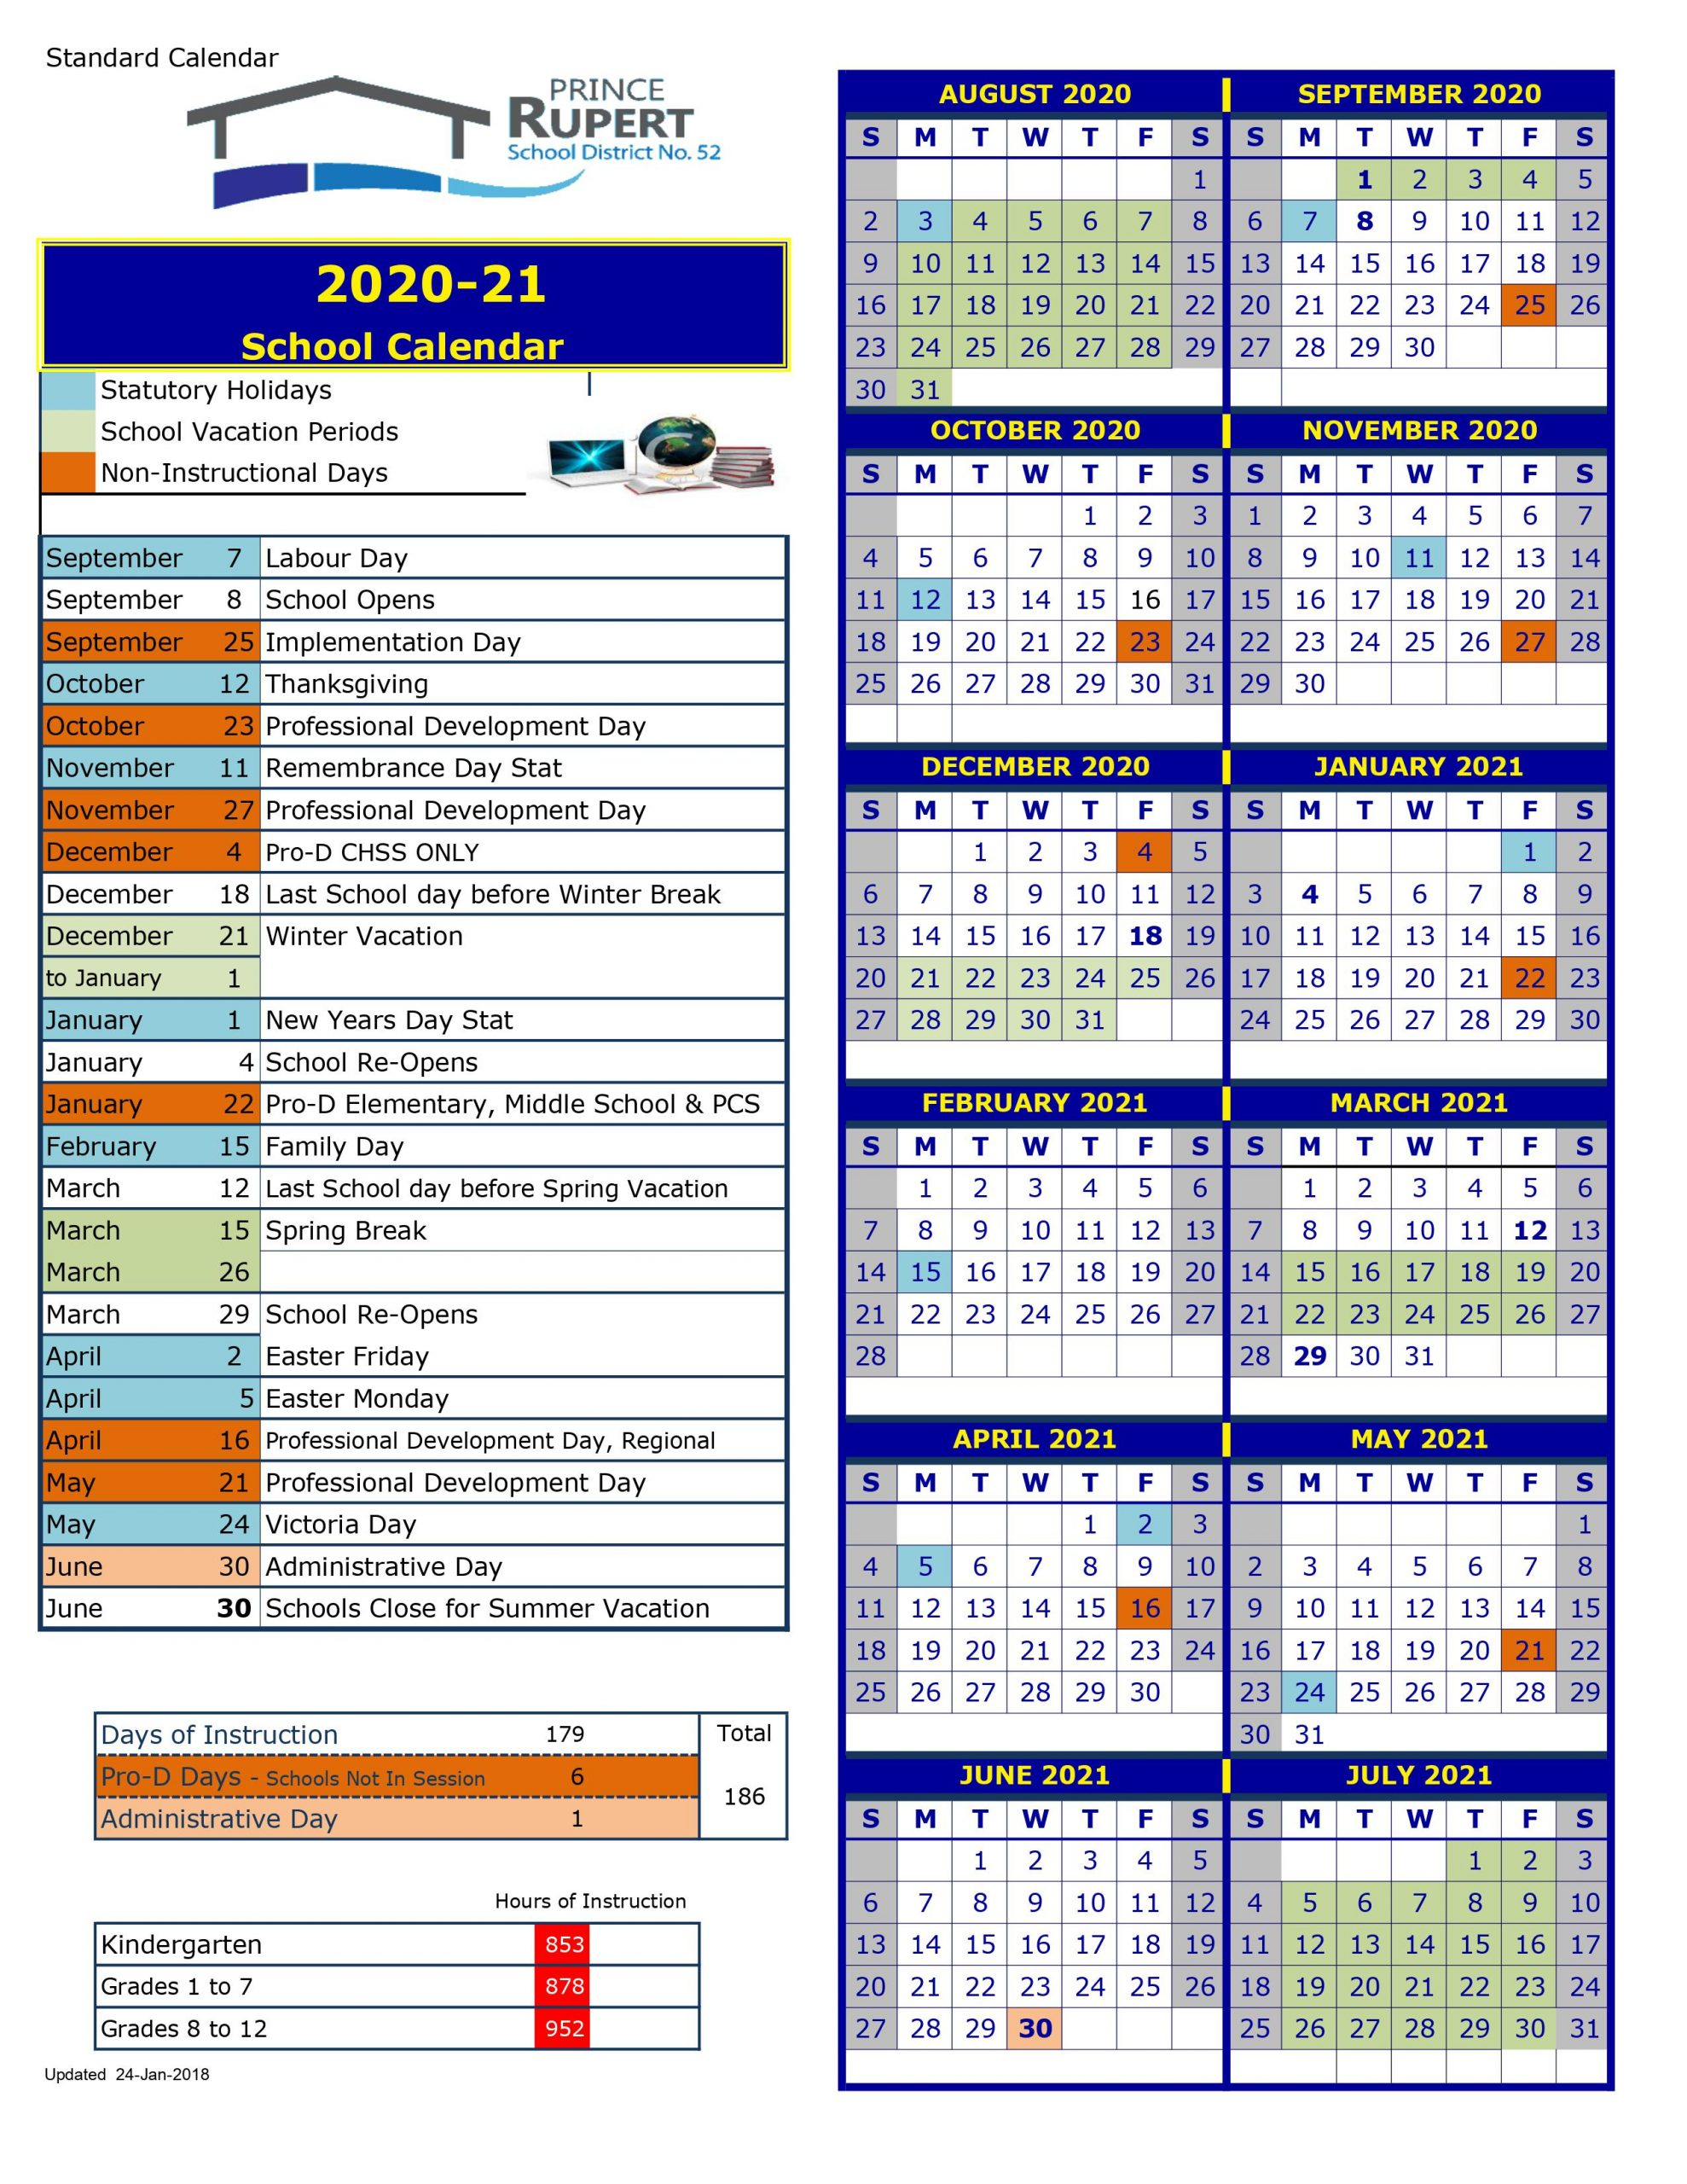 School District 52 Prince Rupert Calendar 2020 And 2021